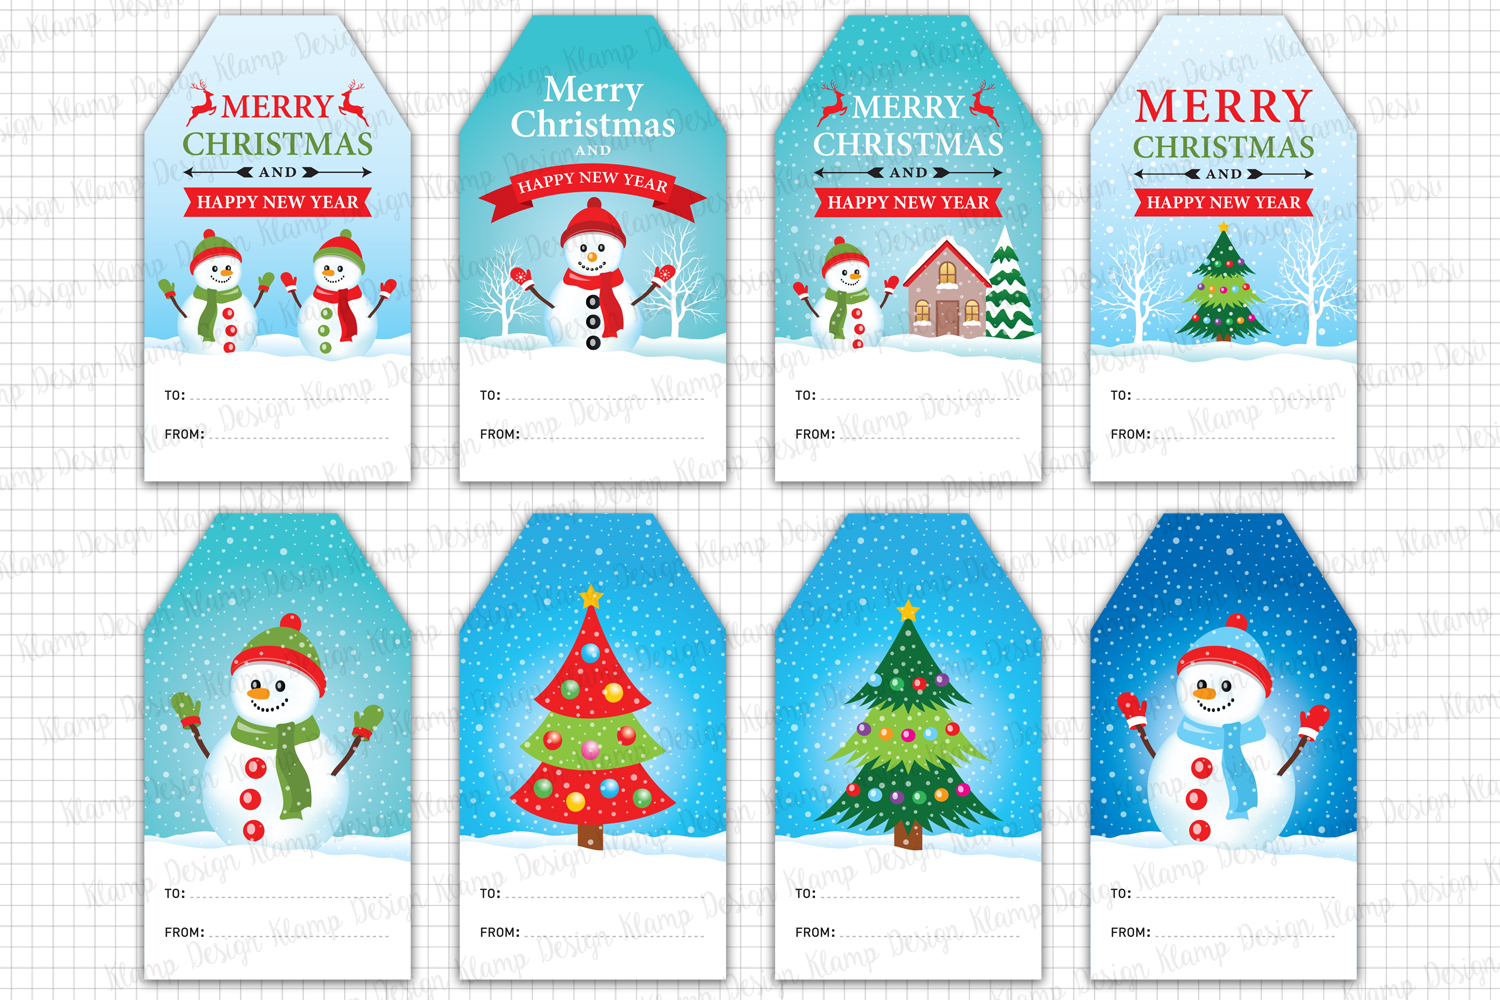 Christmas Gift Tags Printable, Christmas Graphic and Illustrations, Scrapbooking, Card Making, Labels, Christmas Decorations example image 1